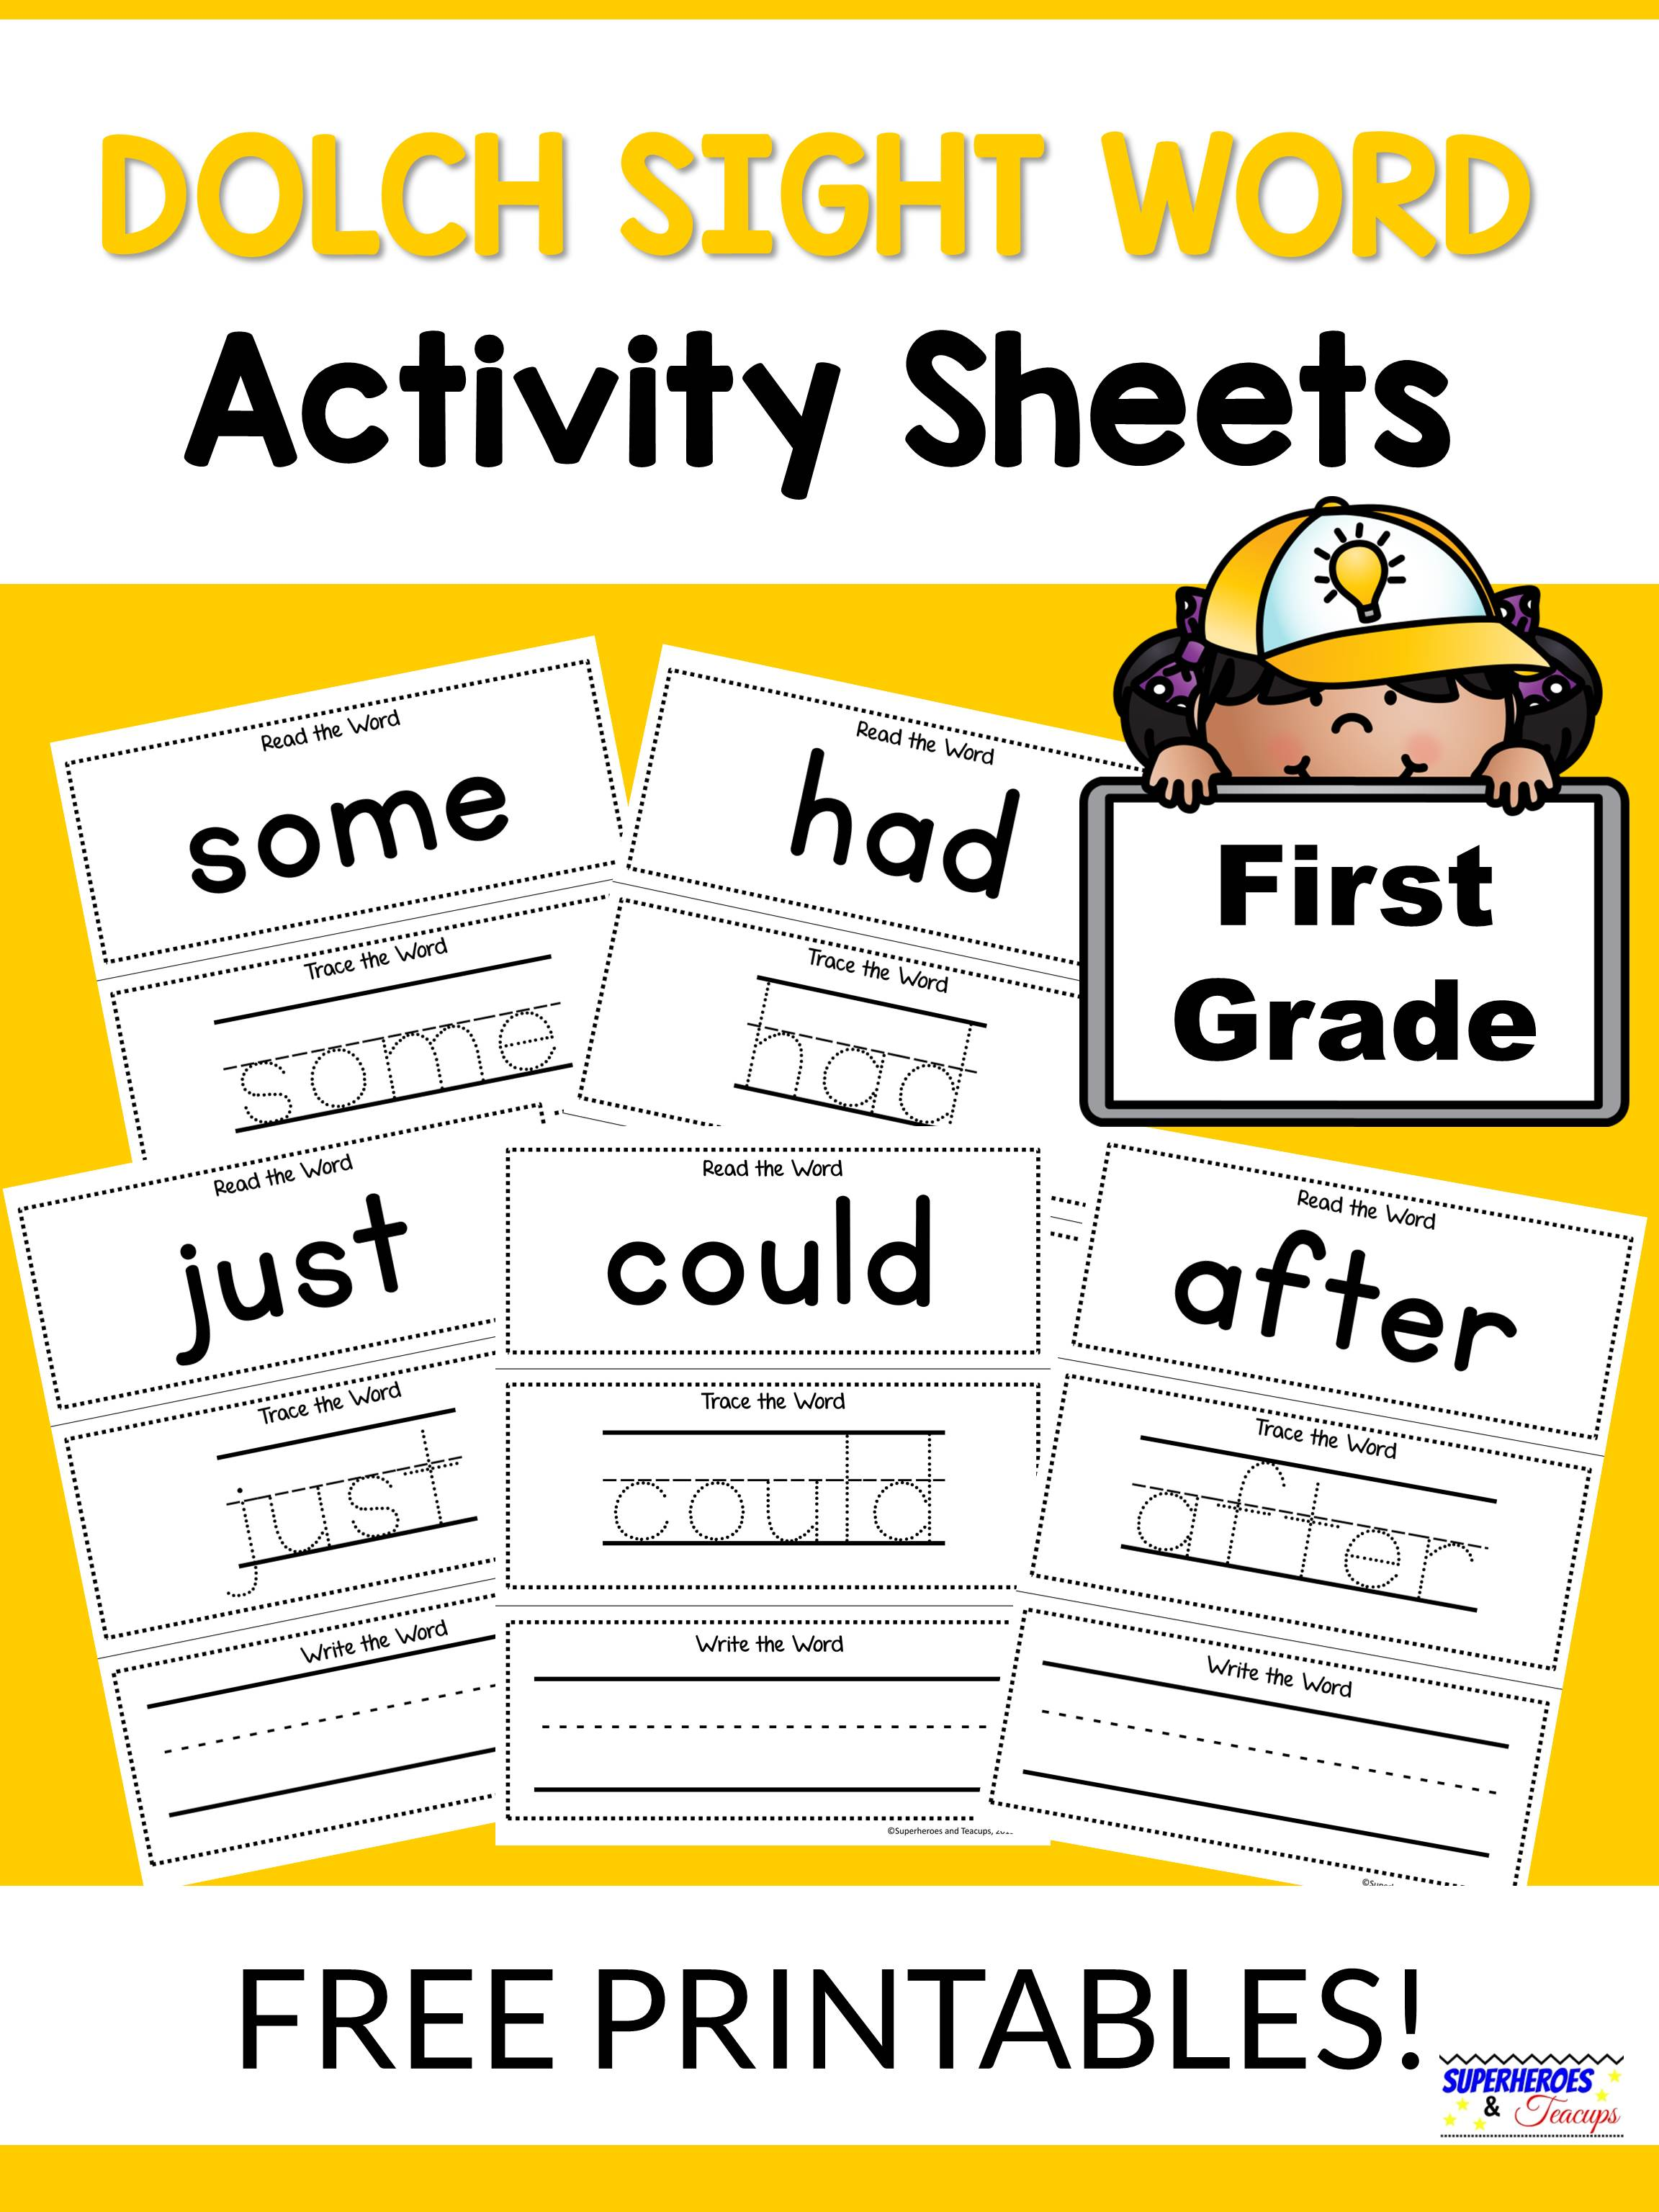 First Grade Dolch Sight Word Activity Sheets